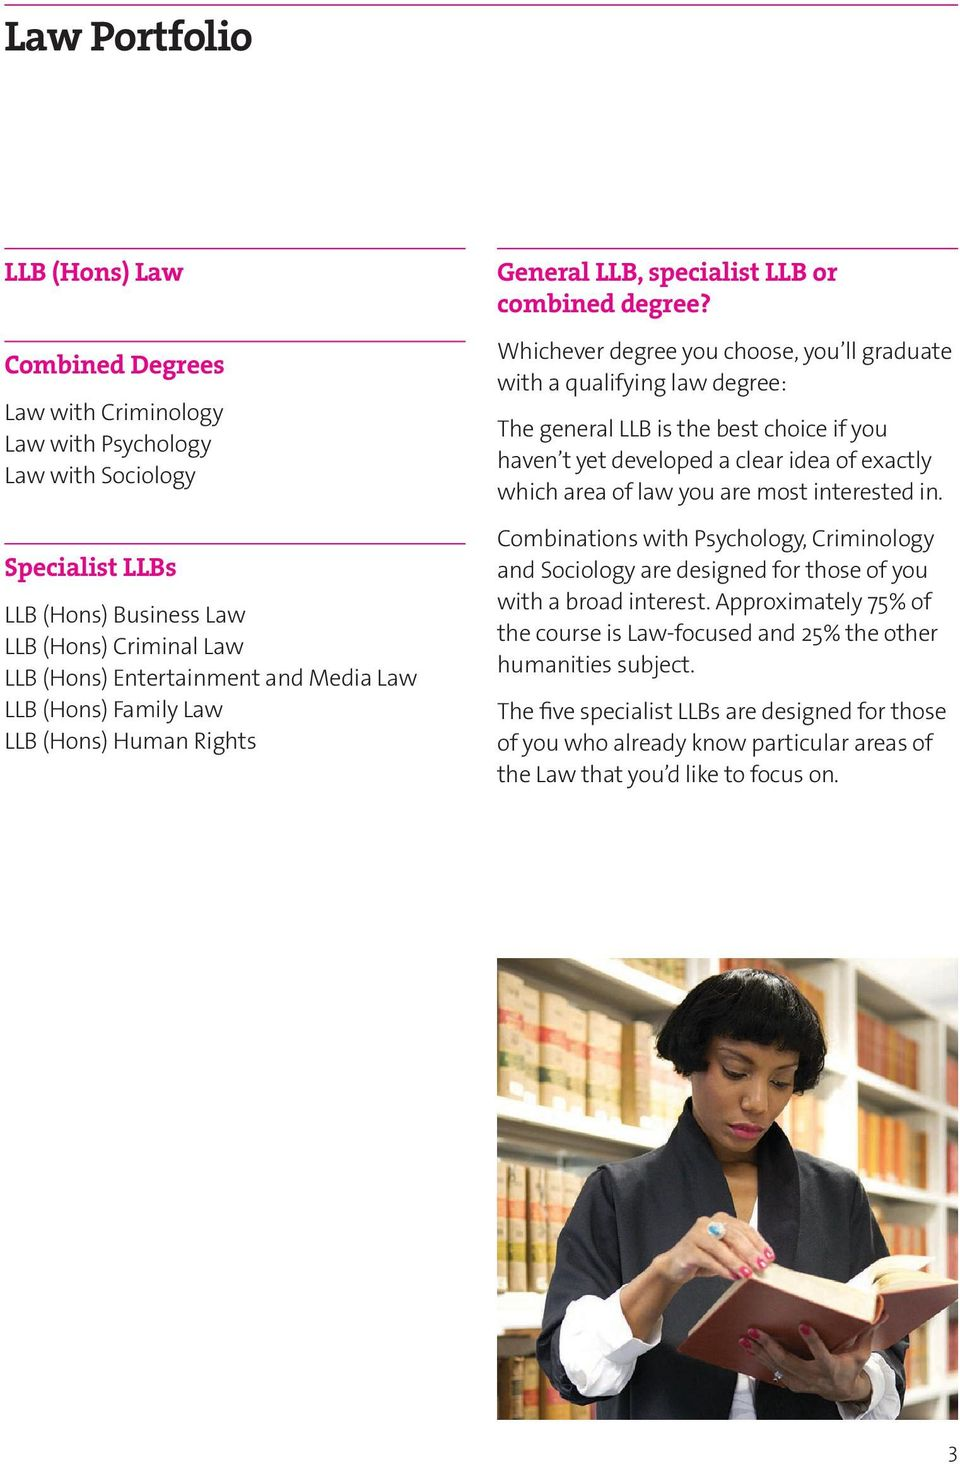 Whichever degree you choose, you ll graduate with a qualifying law degree: The general LLB is the best choice if you haven t yet developed a clear idea of exactly which area of law you are most